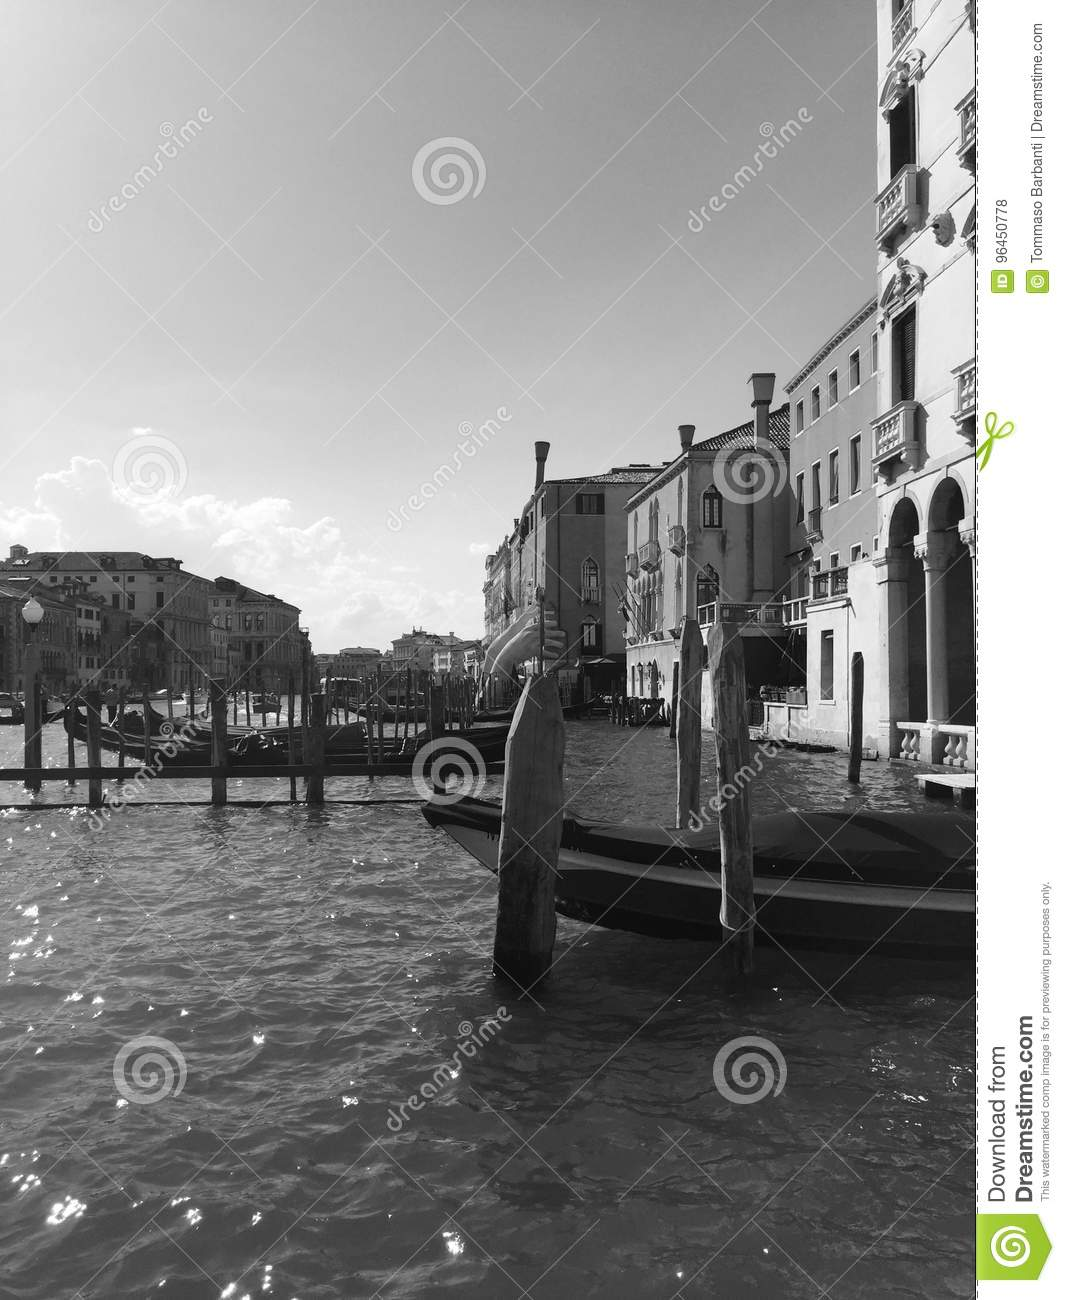 Black And White Postcard From >> Black And White Postcard From Venice Editorial Stock Photo Image